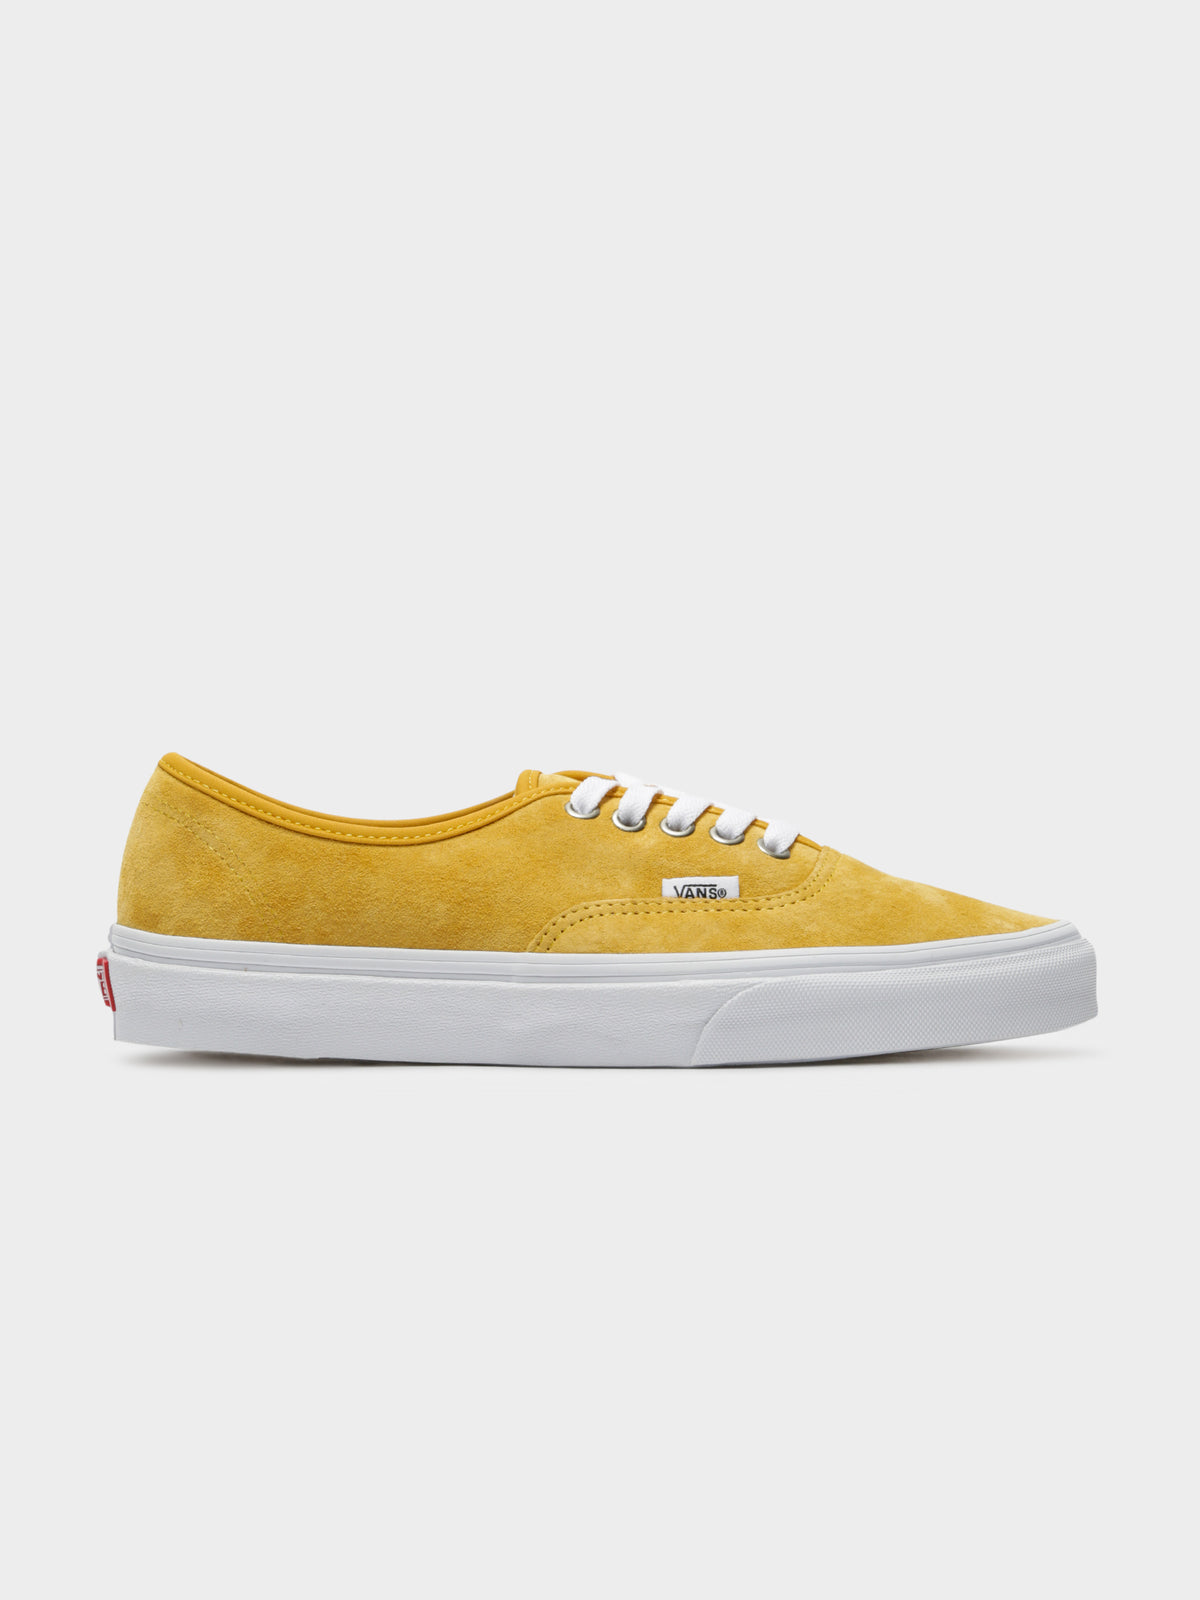 Unisex Authentic Pig Suede Sneakers in Yellow & White